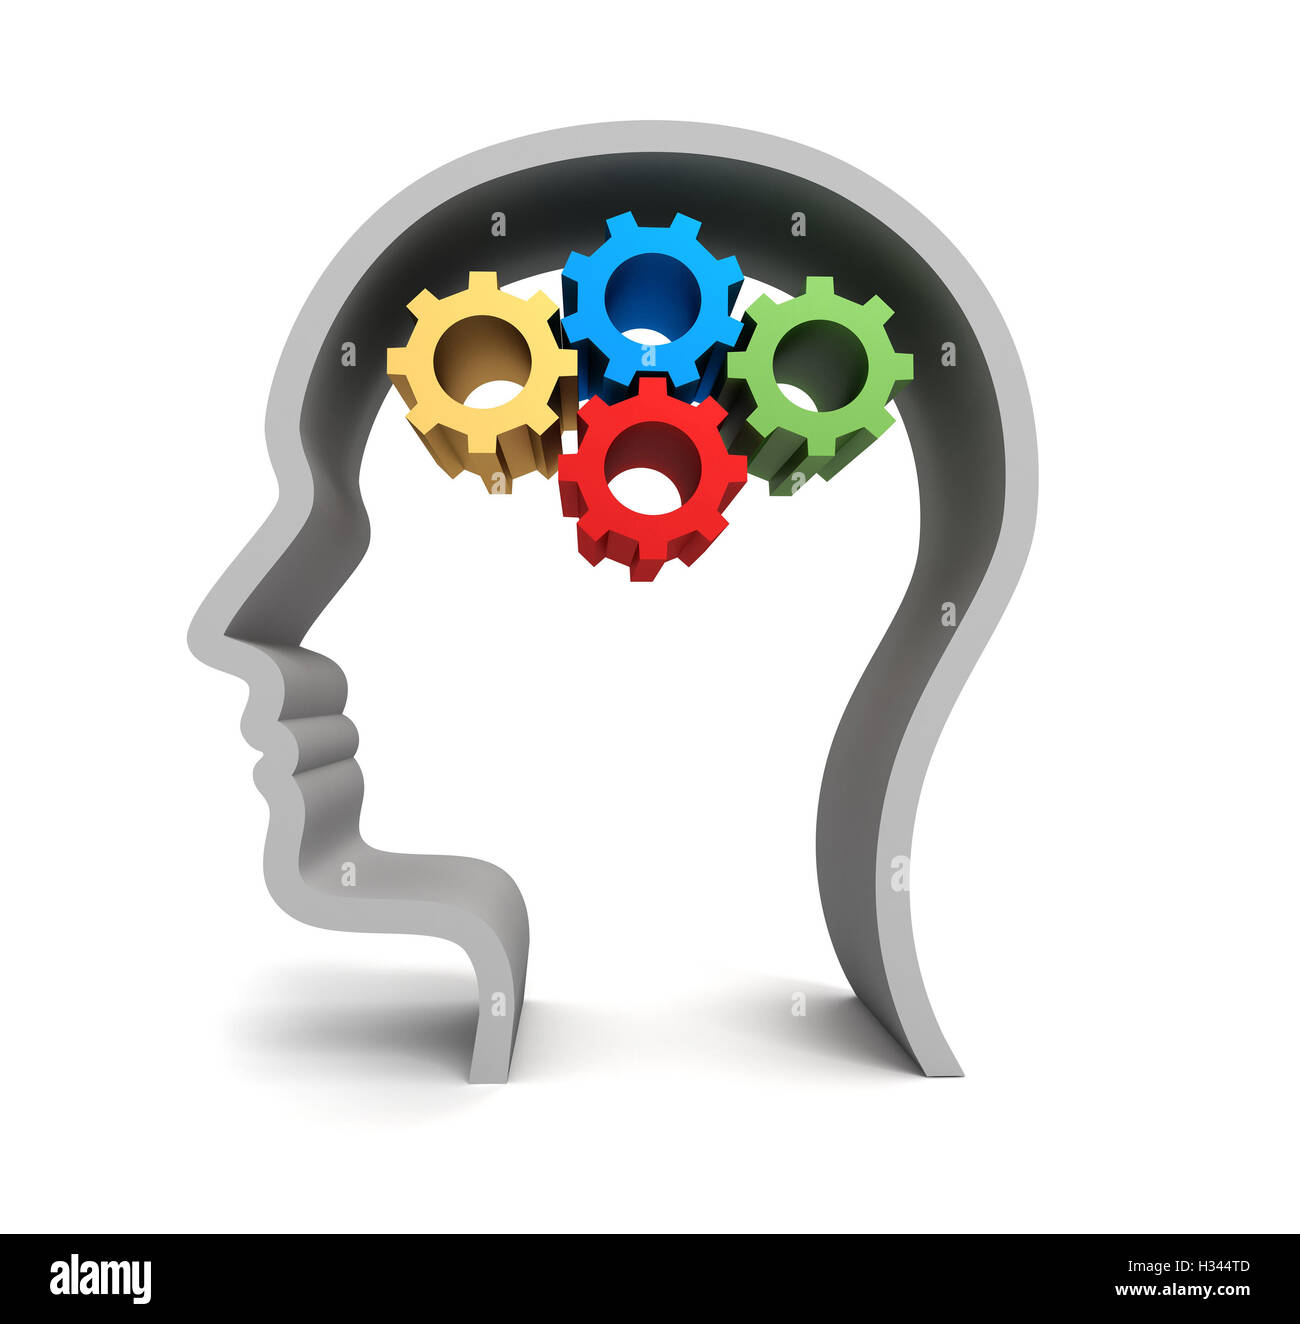 brain gears concept   3d illustration - Stock Image